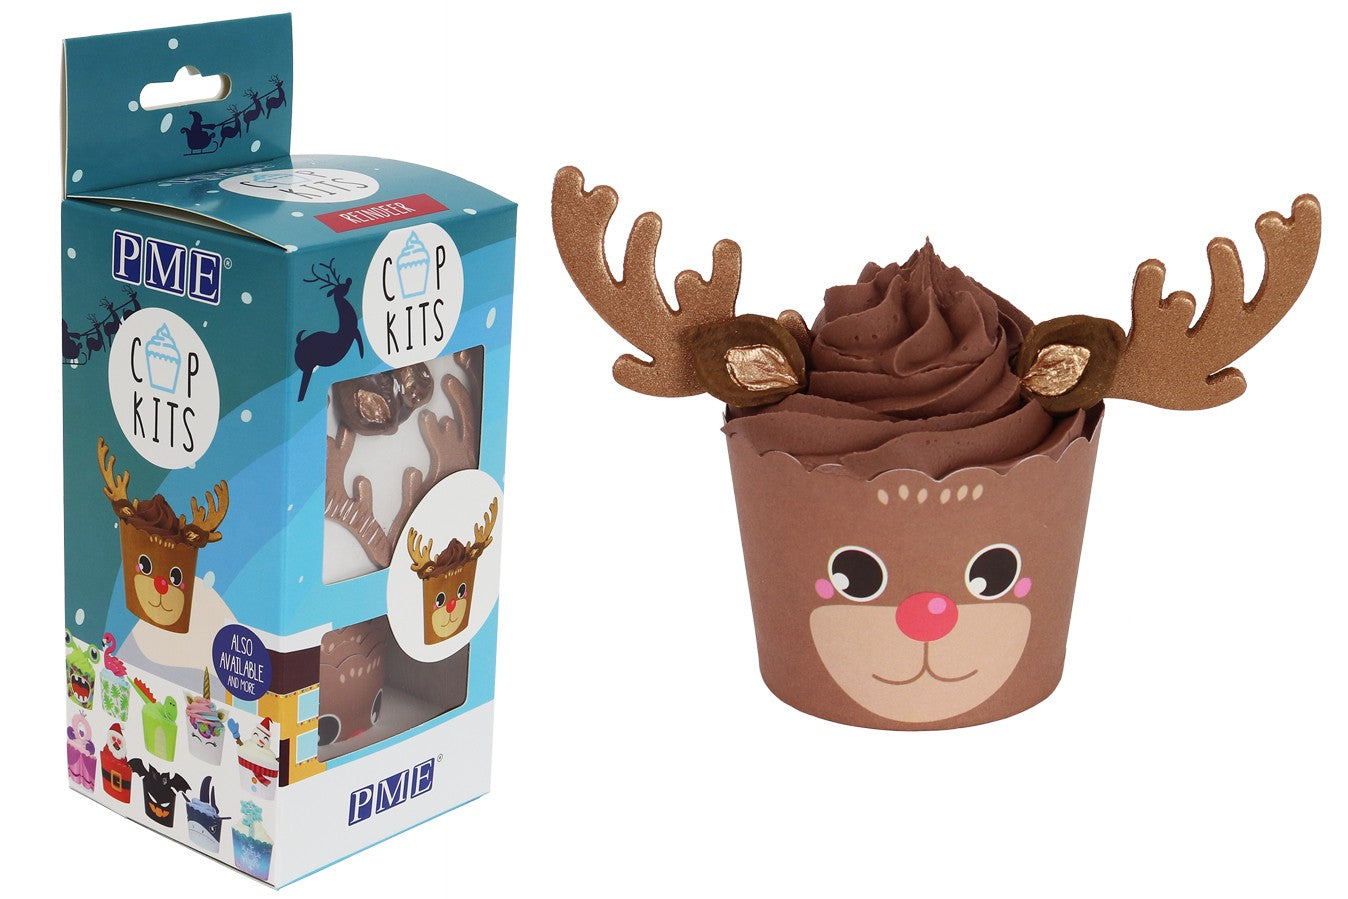 PME : CupKit - Rudolf Cupcake Decorating Kit